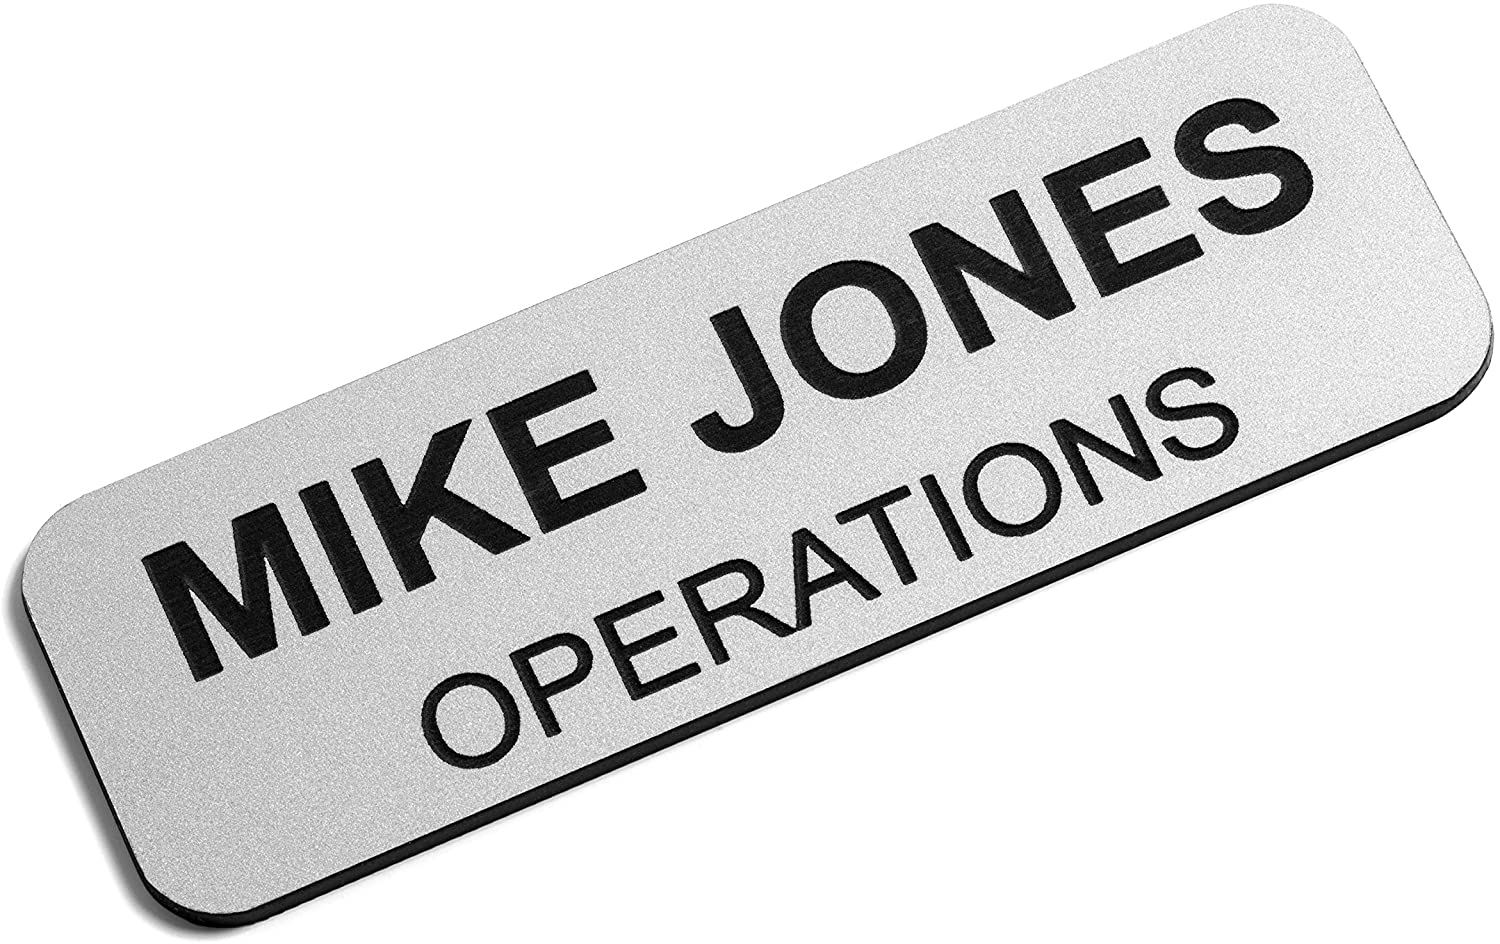 5 Employee Personized Name Tag Badge ID Badge Holder /&Stainless Steel Pin L